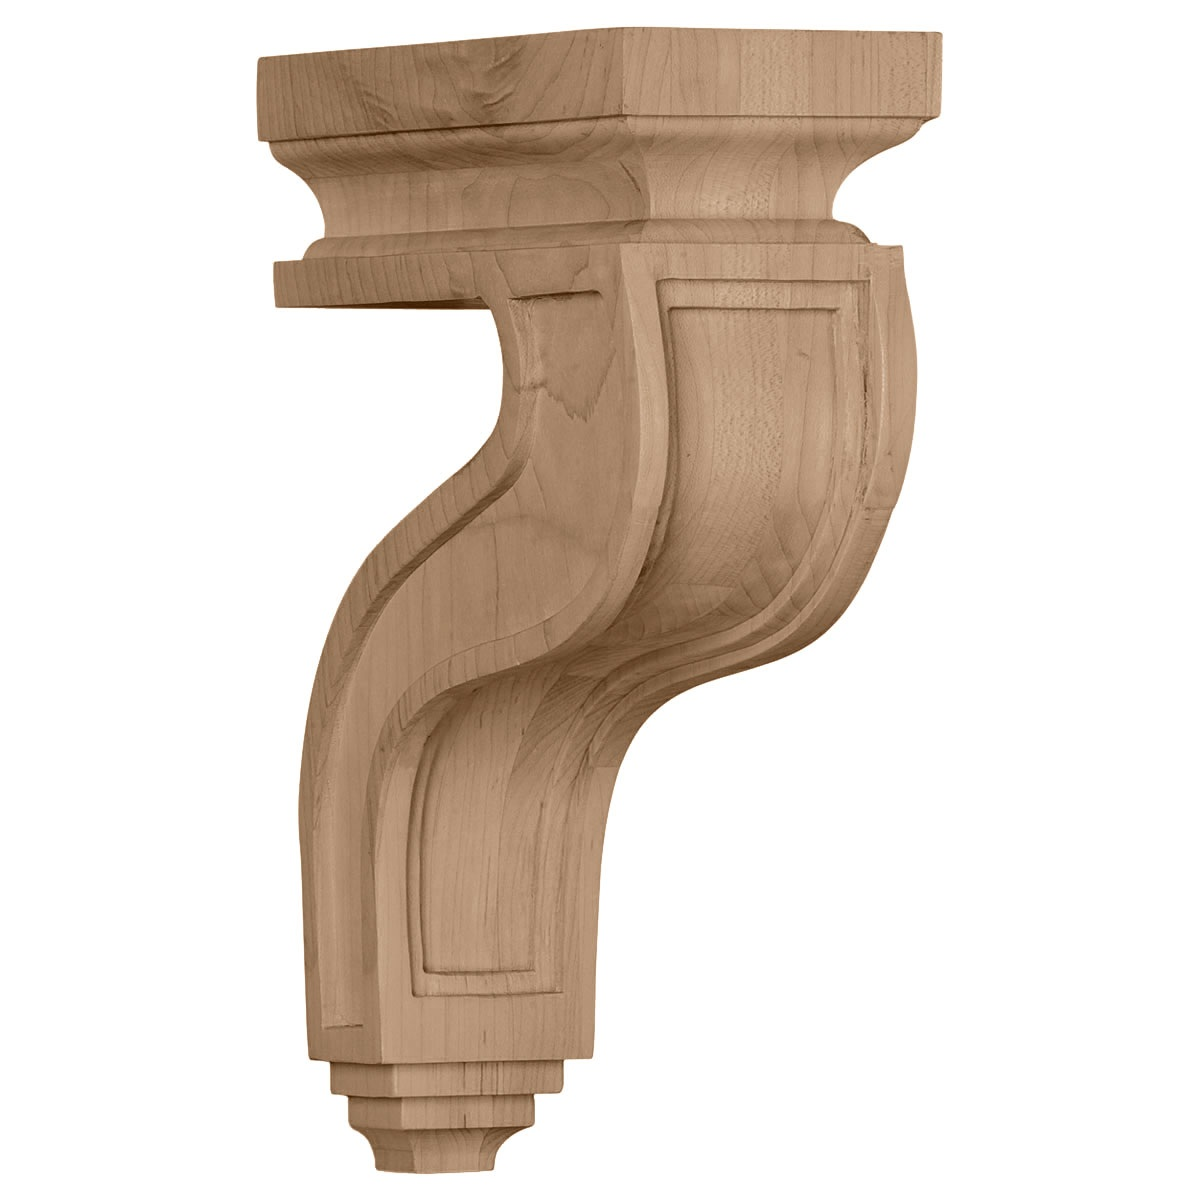 COR03X07X11HA Small Hollow Back Corbel